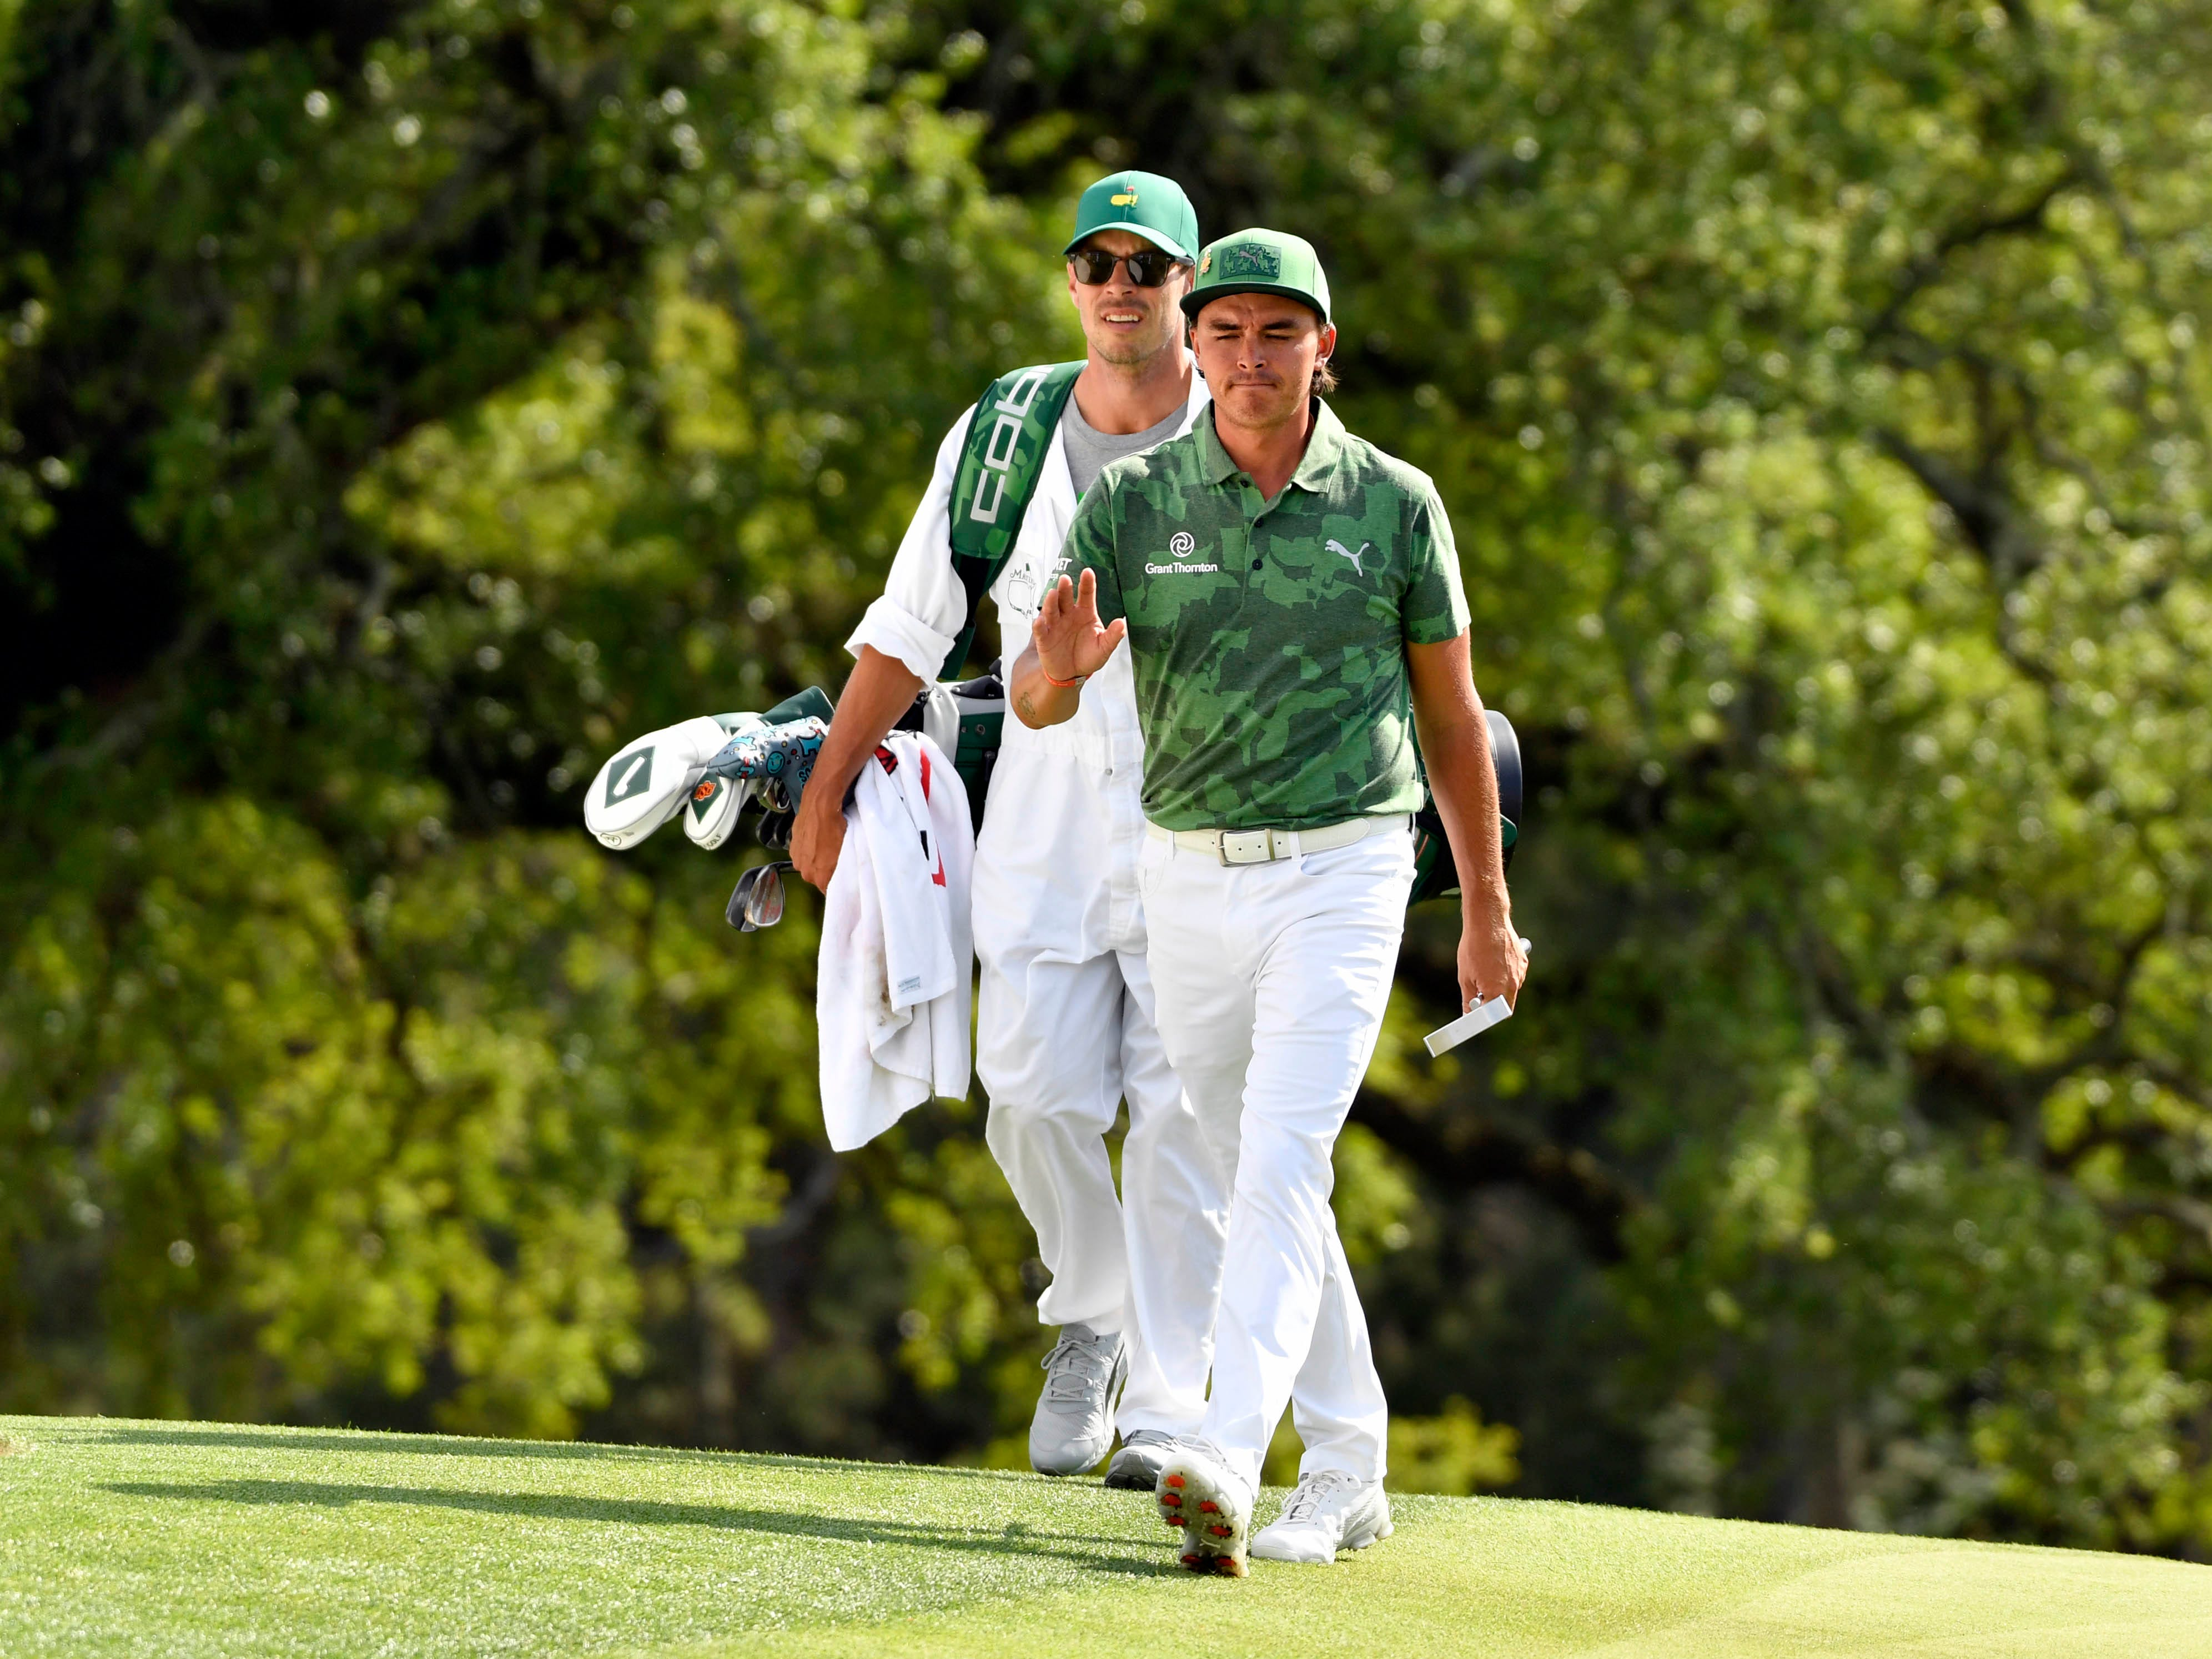 Apr 11, 2019; Augusta, GA, USA; Rickie Fowler and caddie Joseph Skovron to the 18th green during the first round of The Masters golf tournament at Augusta National Golf Club.